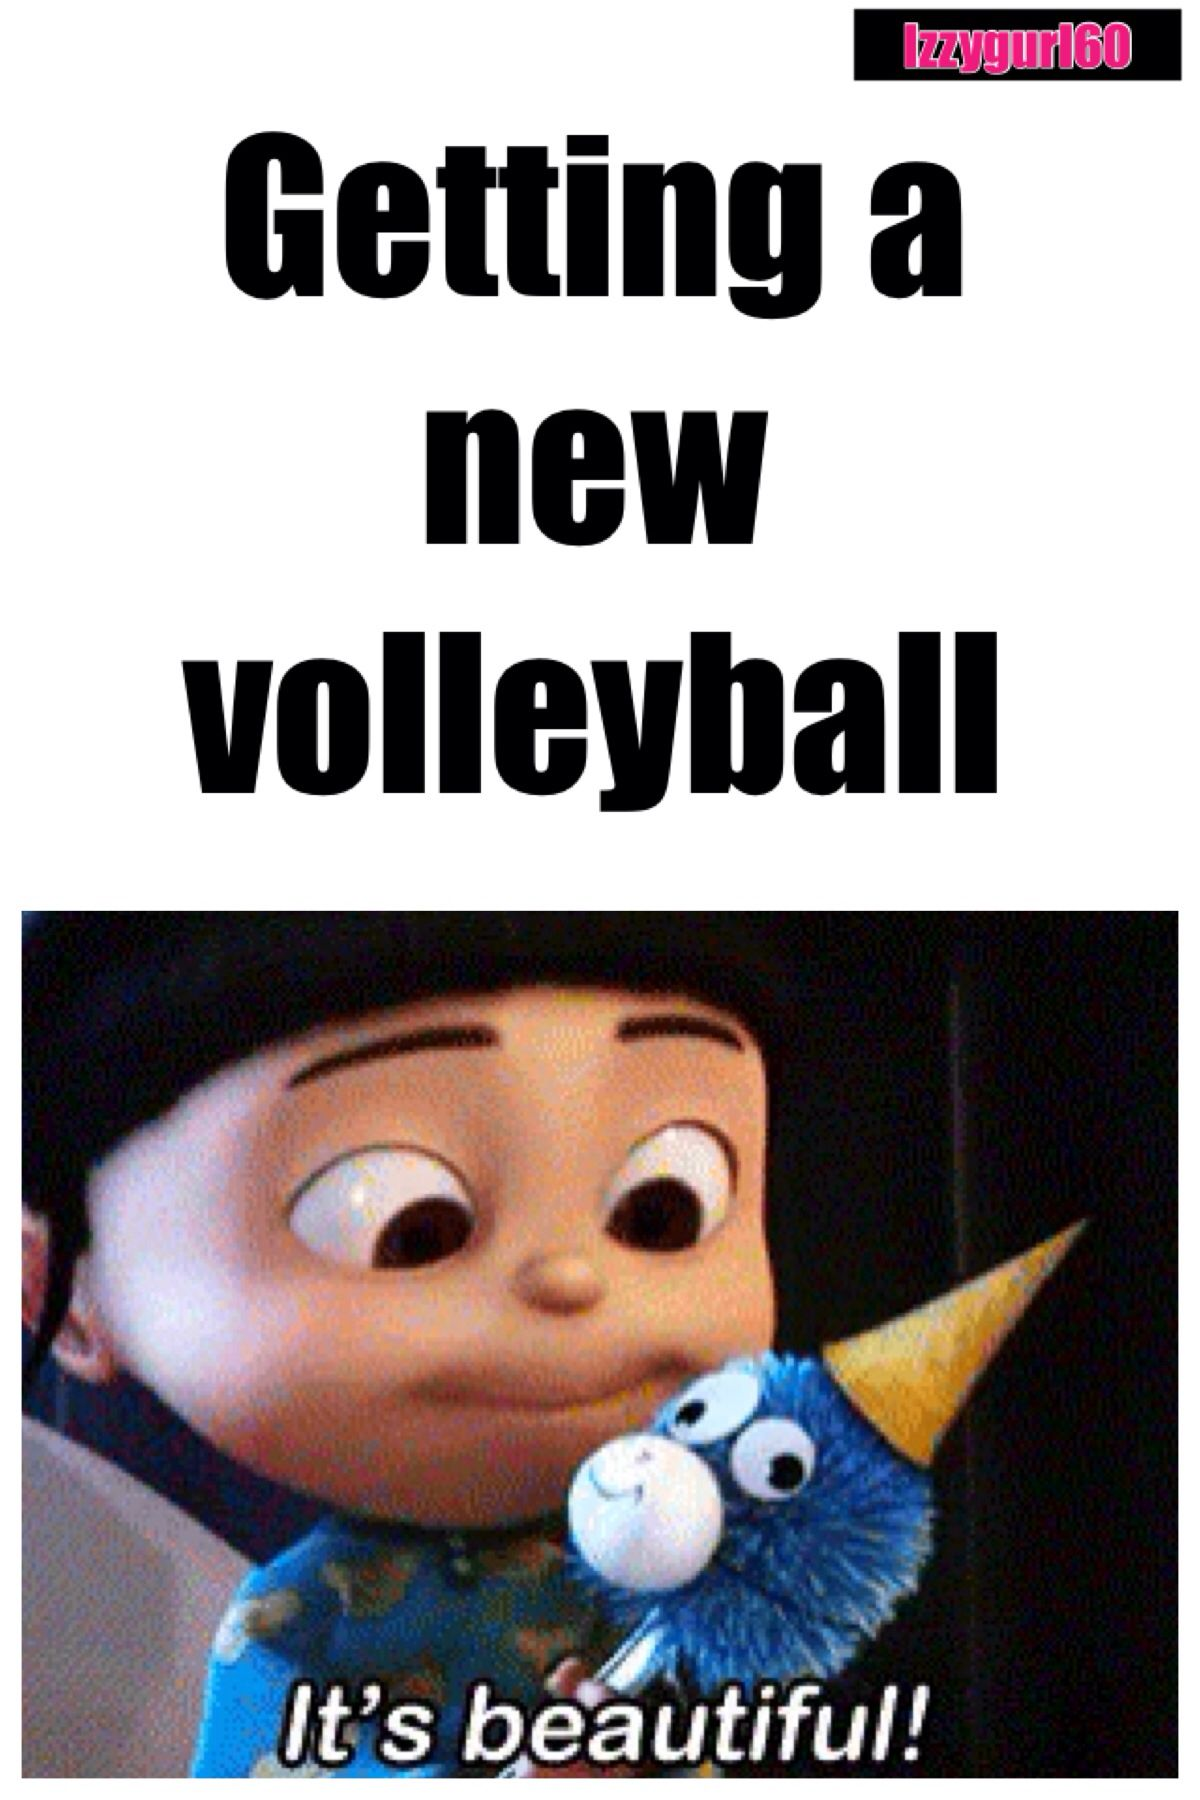 When I Get A New Volleyball Volleyball Quotes Volleyball Jokes Volleyball Humor